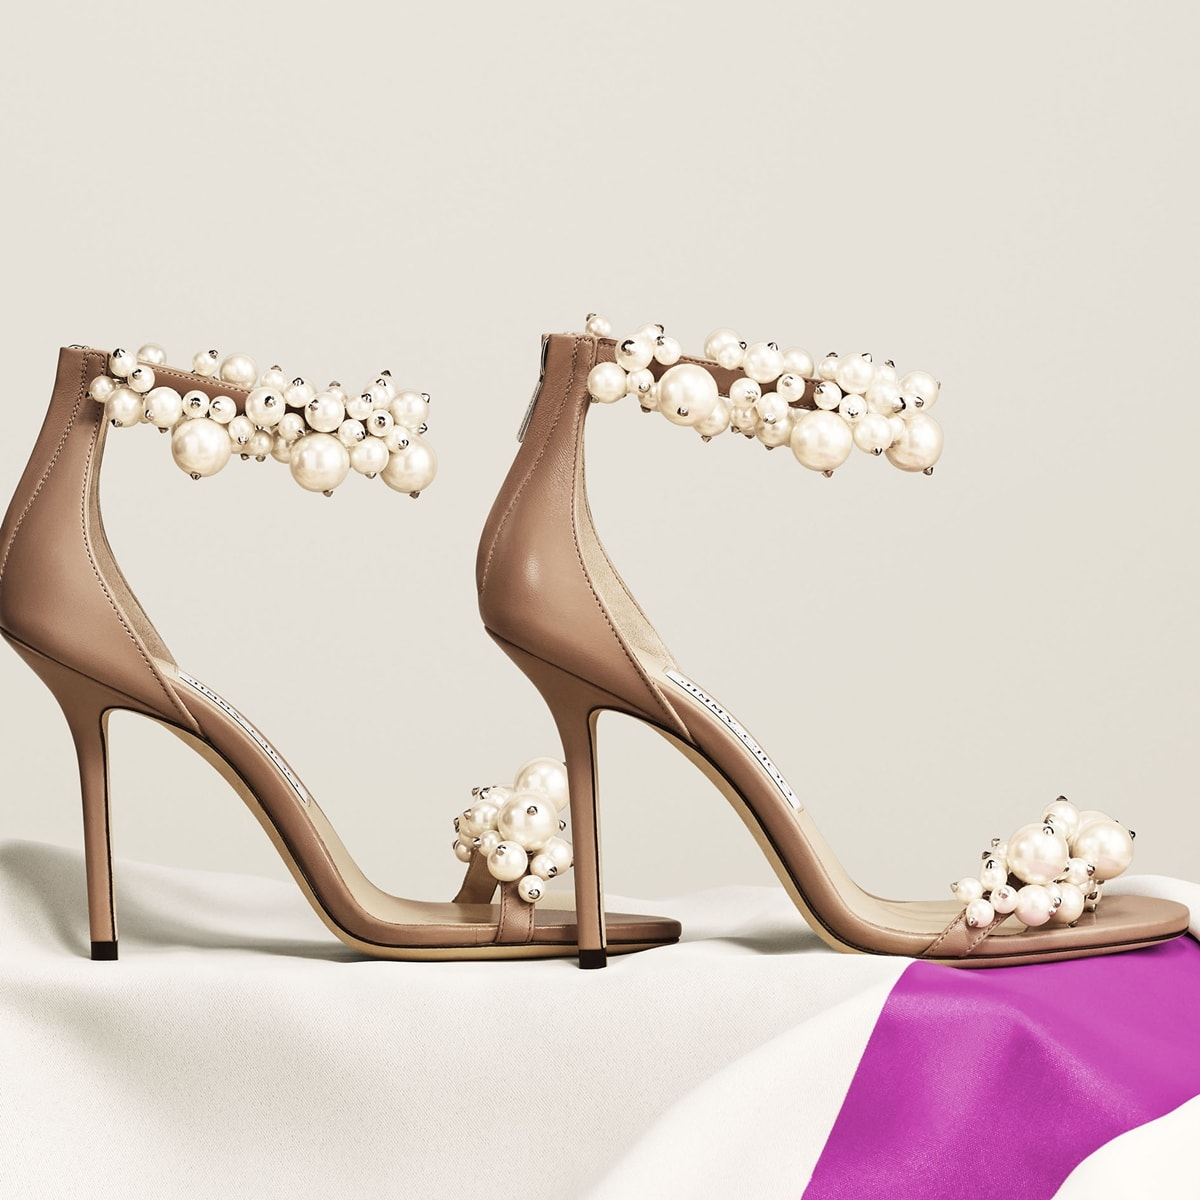 Jimmy Choo sandals embellished with clusters of mixed imitation-pearls